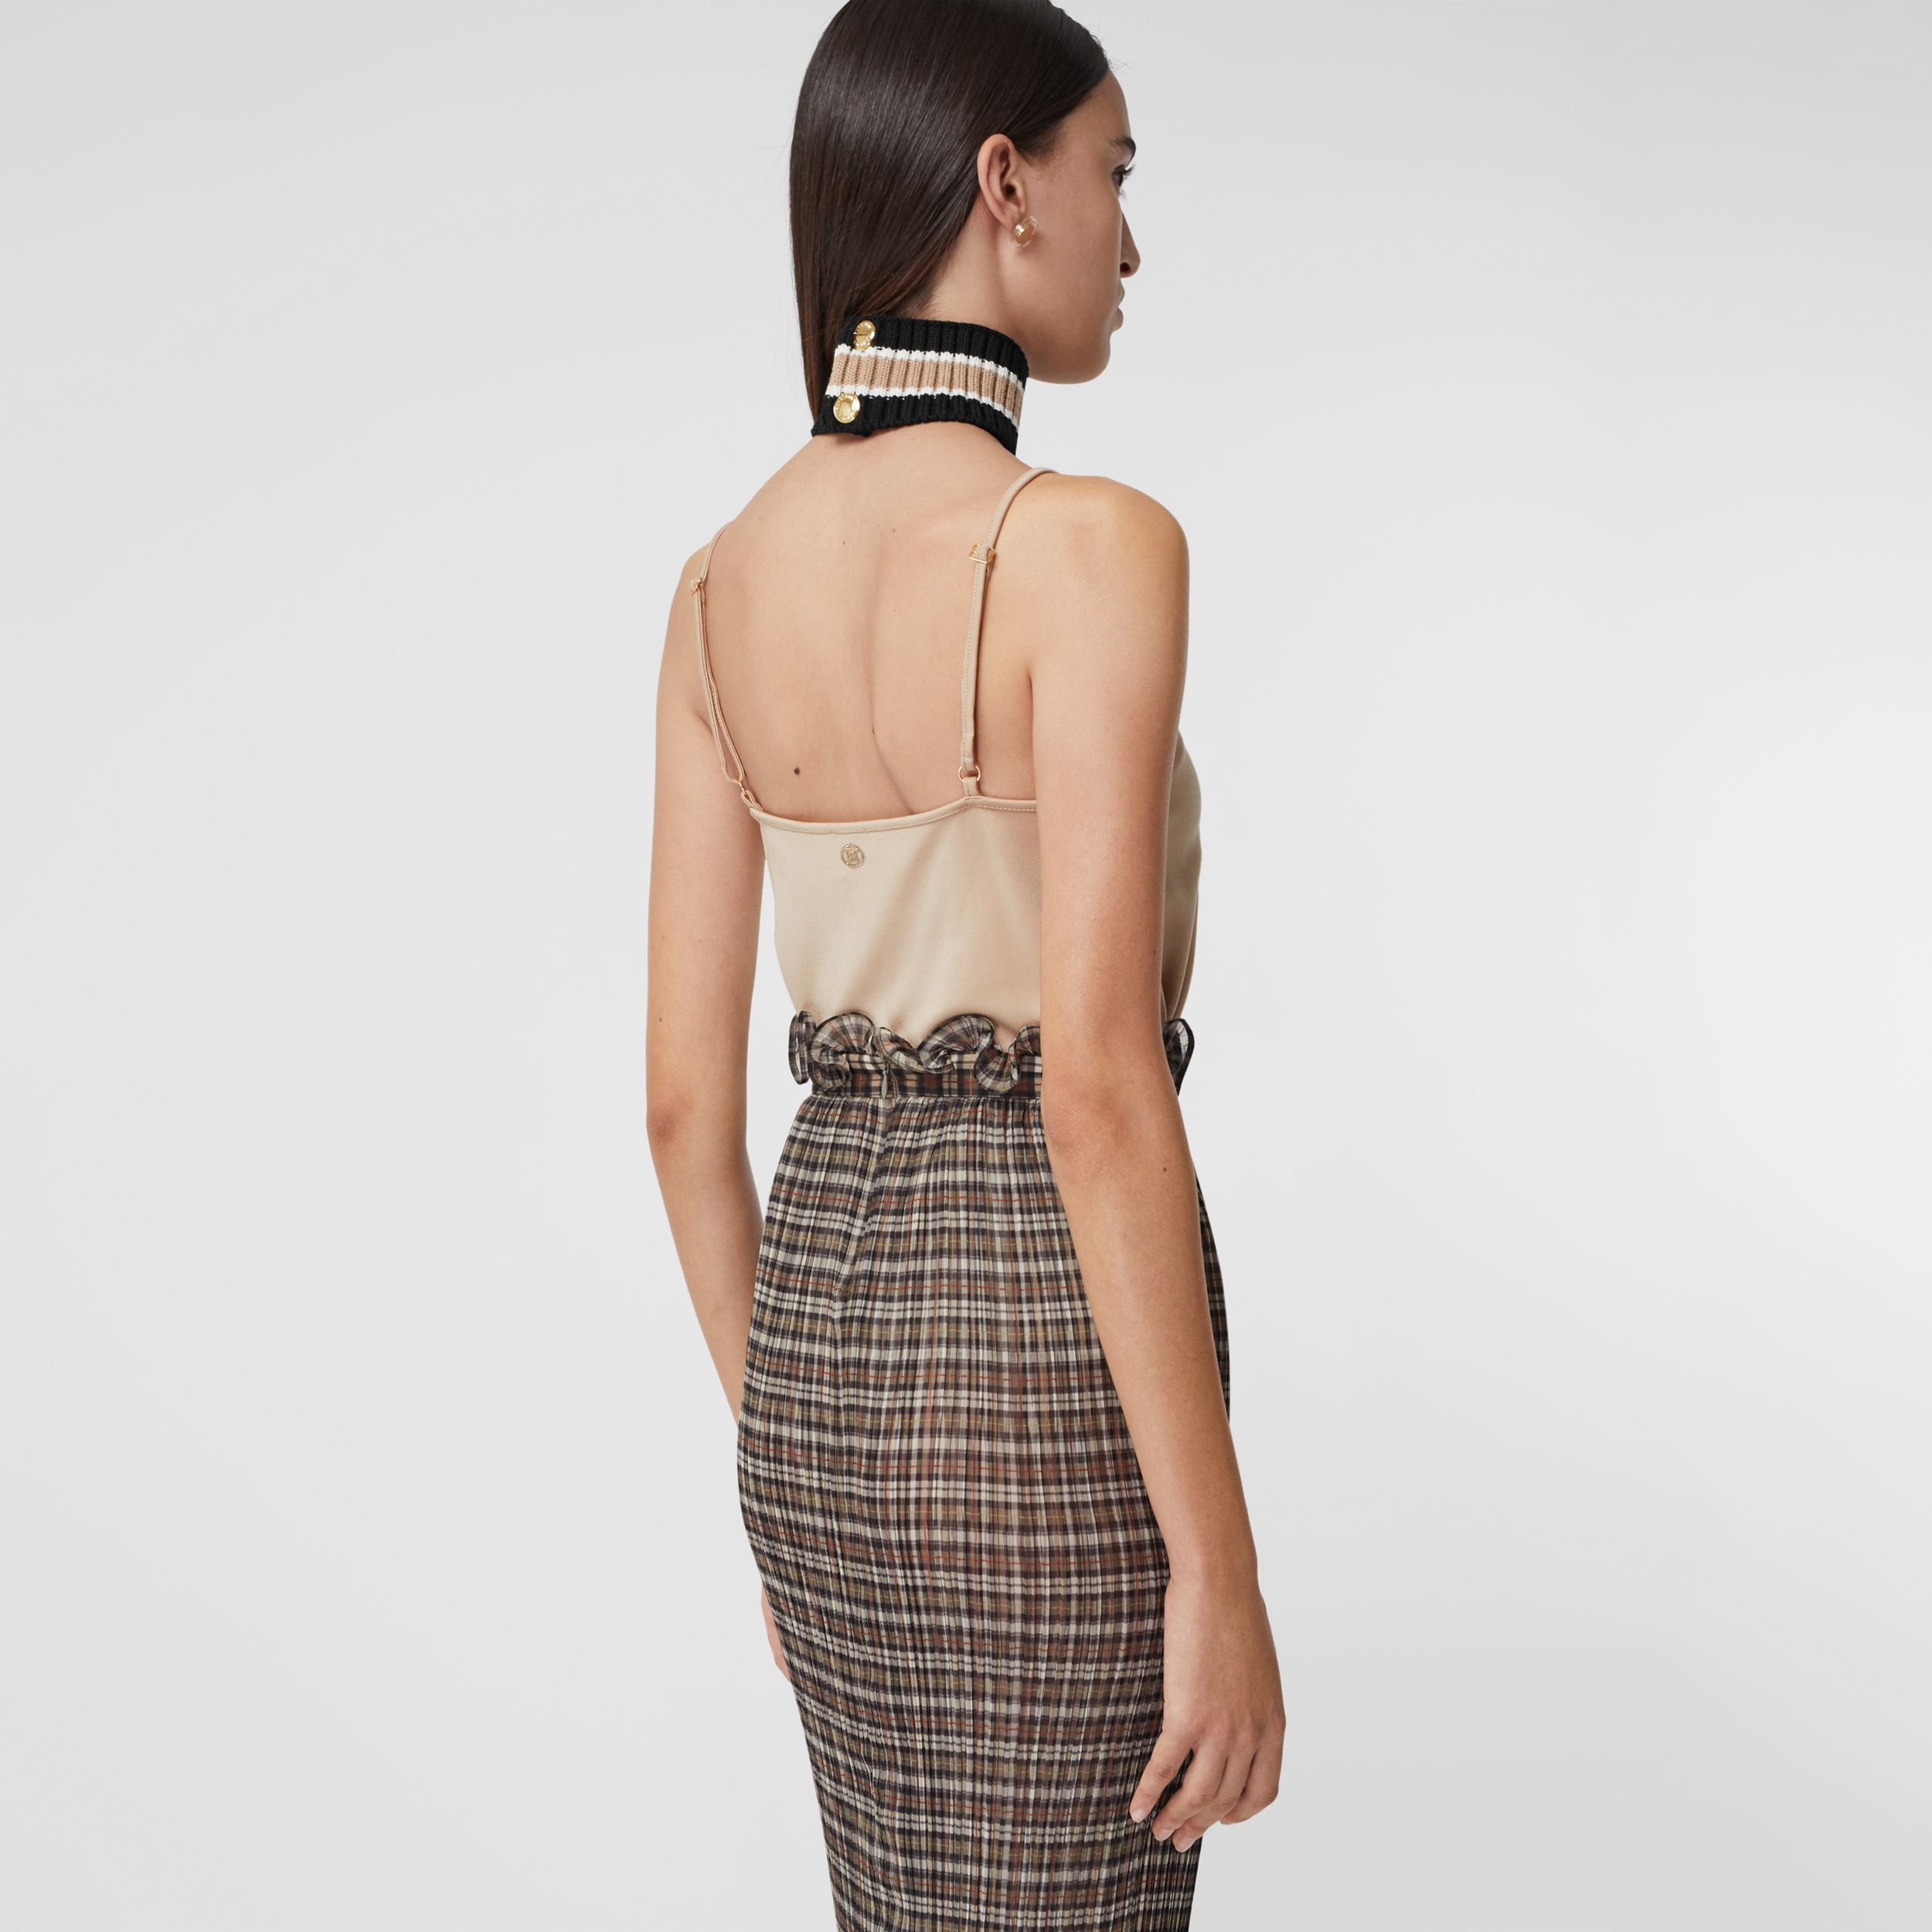 Monogram Motif Stretch Jersey Camisole in Soft Fawn - Women | Burberry Hong Kong S.A.R. - 2